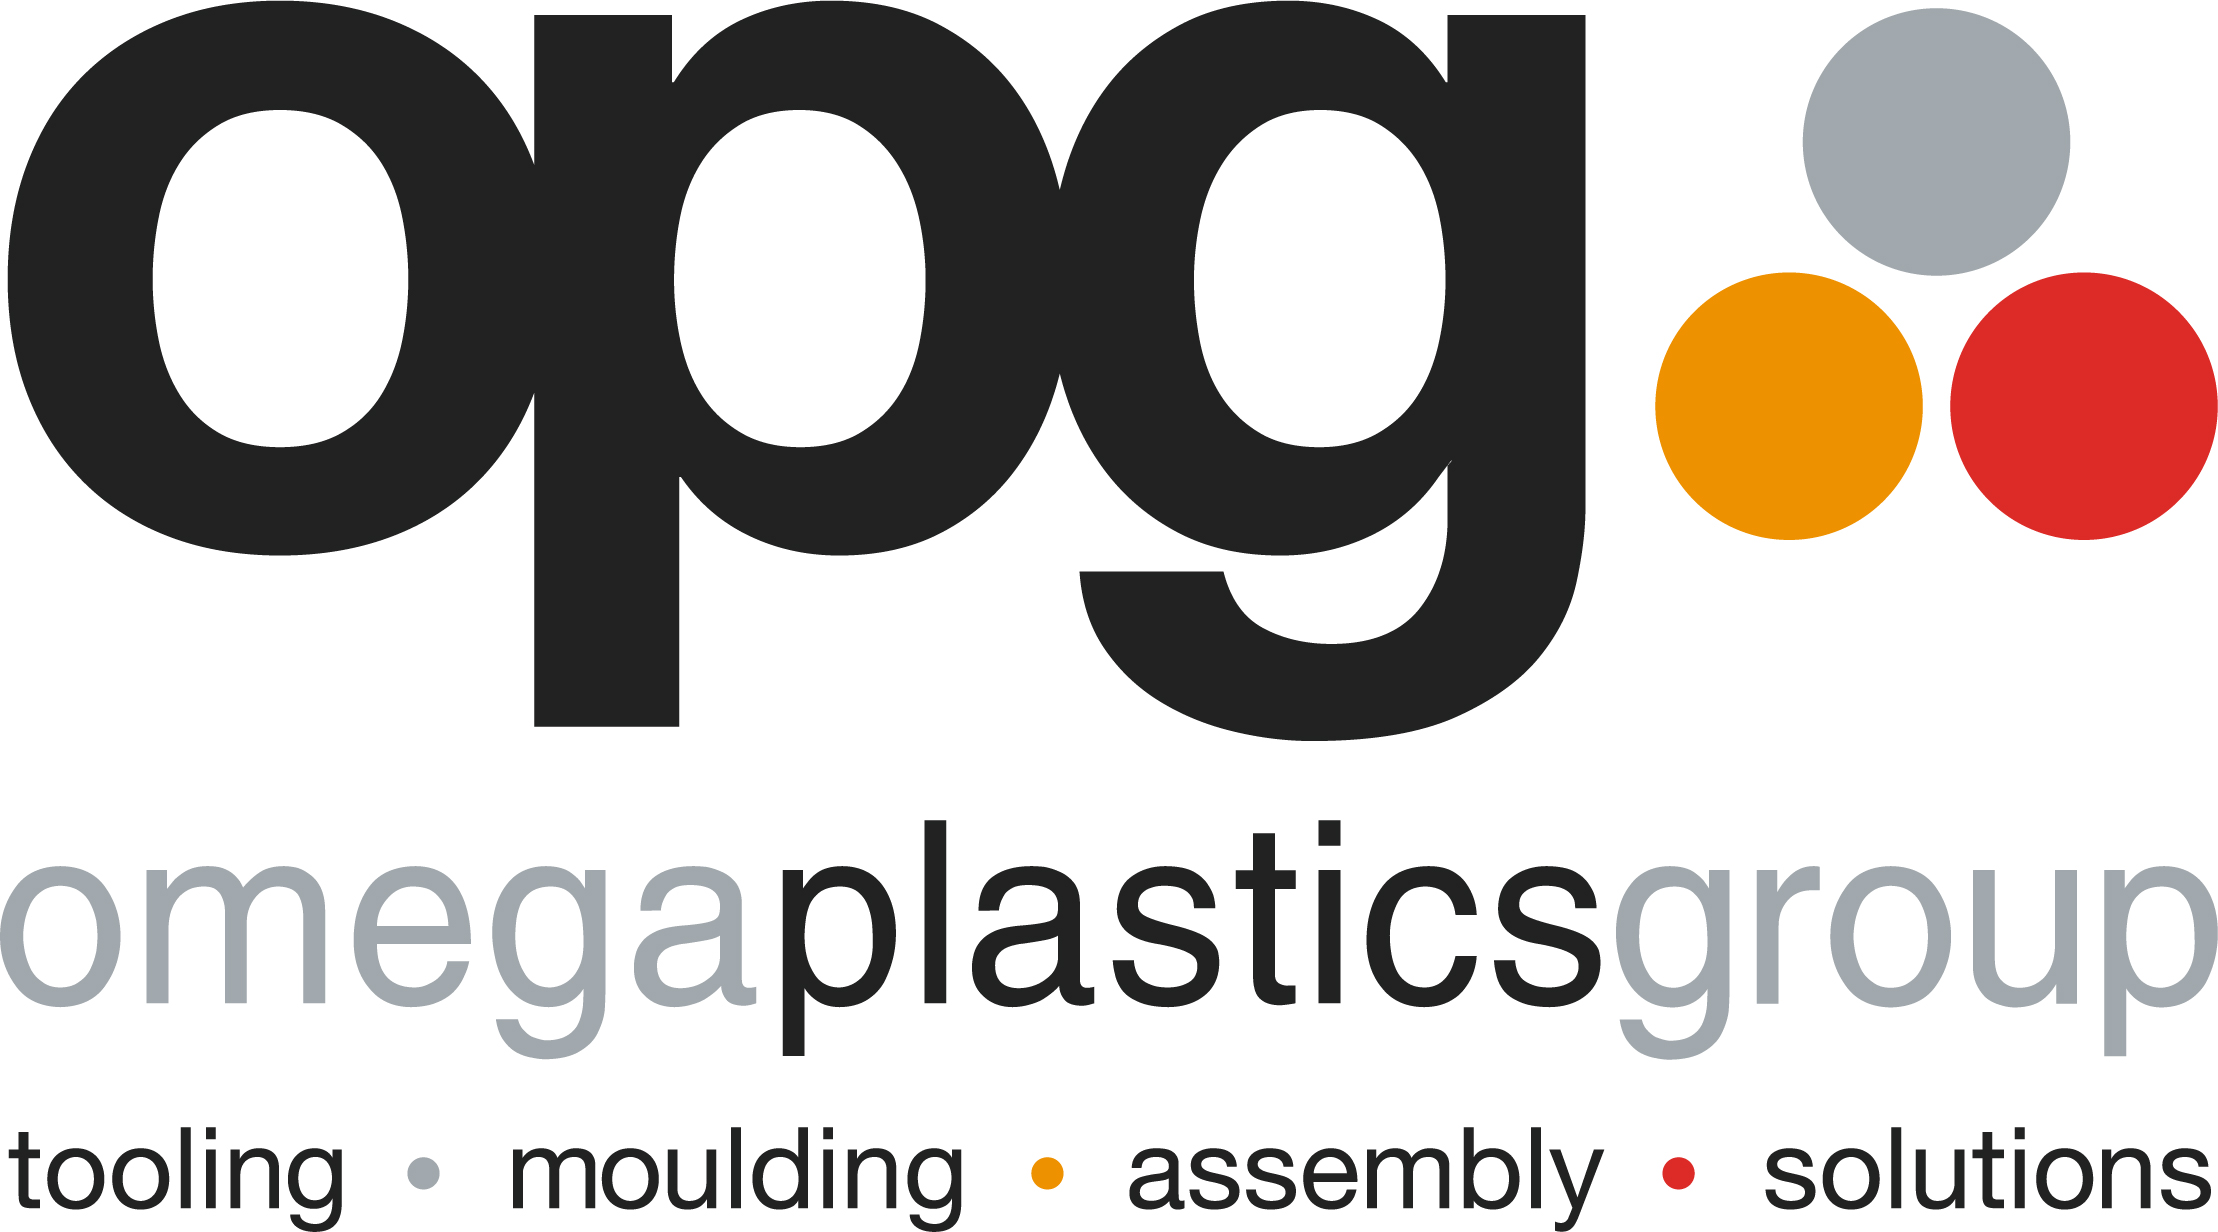 Omega Plastics Group